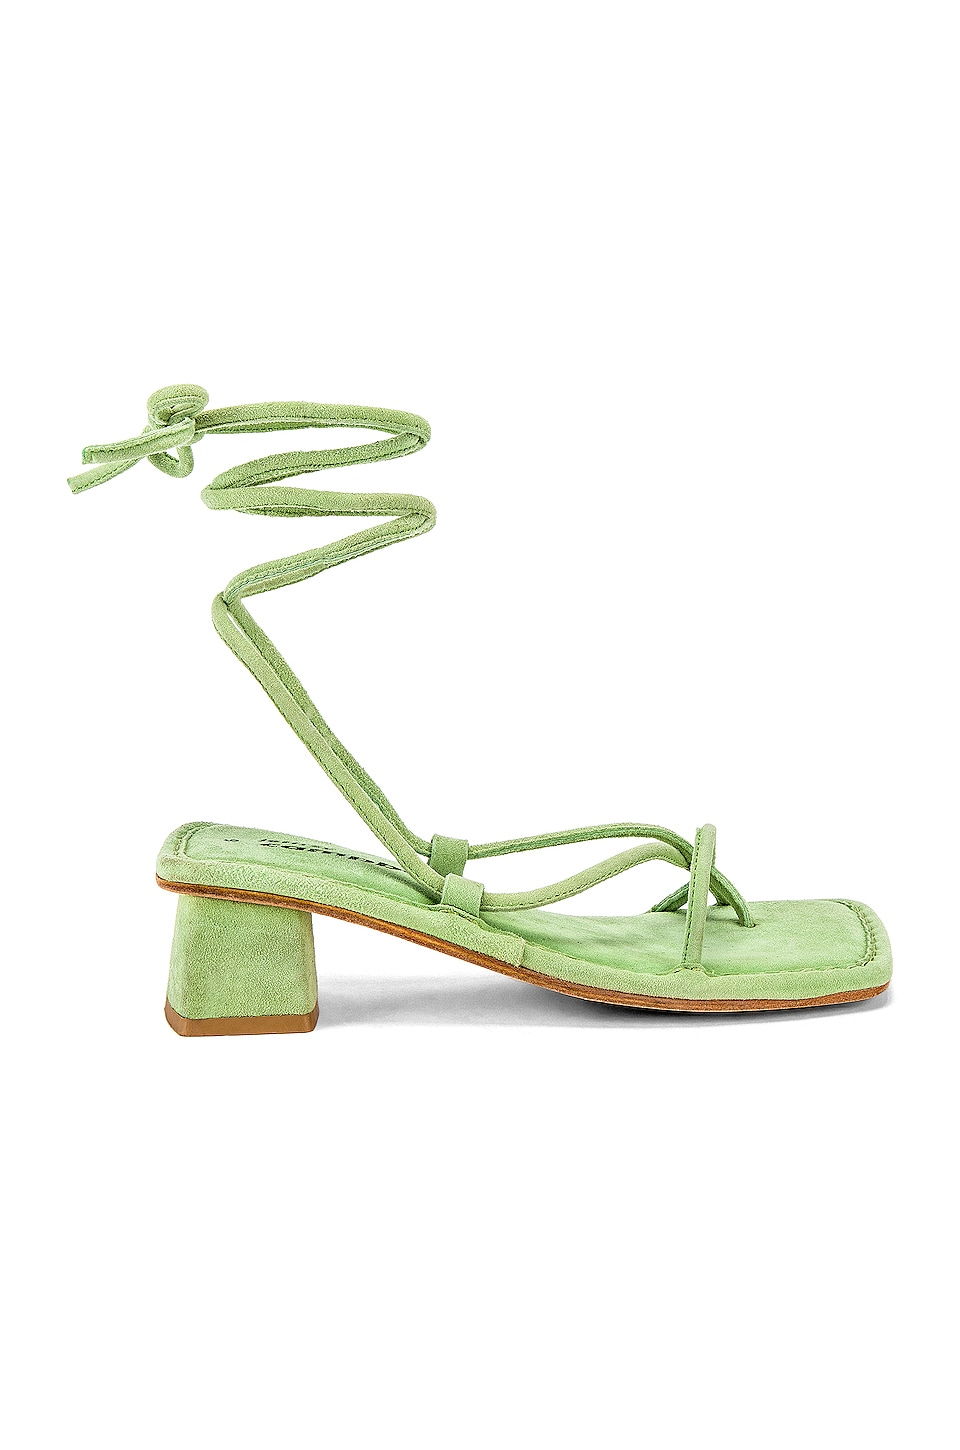 Jeffrey Campbell Kaine Sandal in Mint Suede